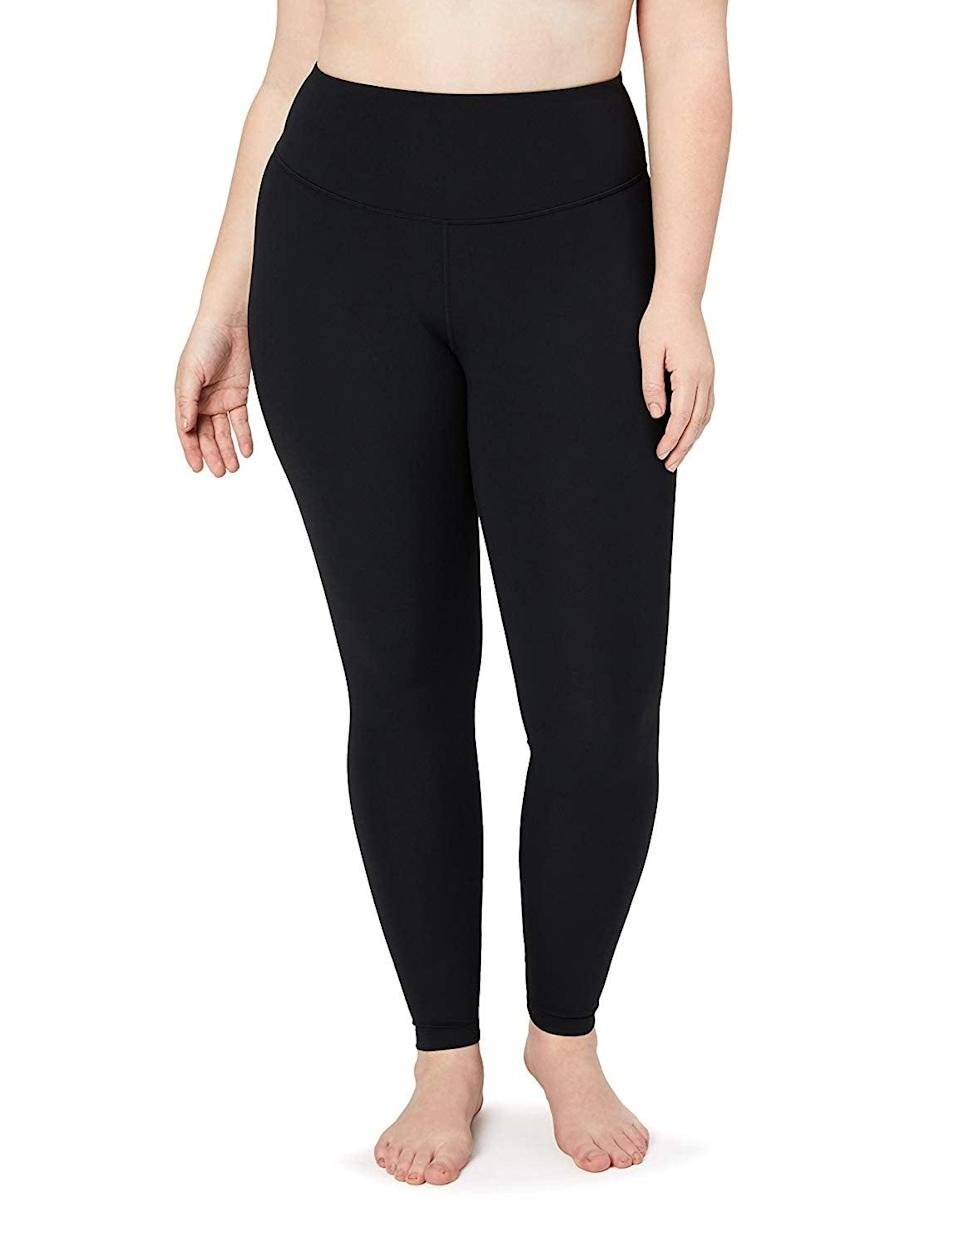 "<p>One woman said of the <span>Core 10 Women's Spectrum Yoga High Waist Full-Length Legging</span> ($21-$42), ""The only thing that I don't like about these leggings is that I have to take them off to shower and wash them.""</p>"